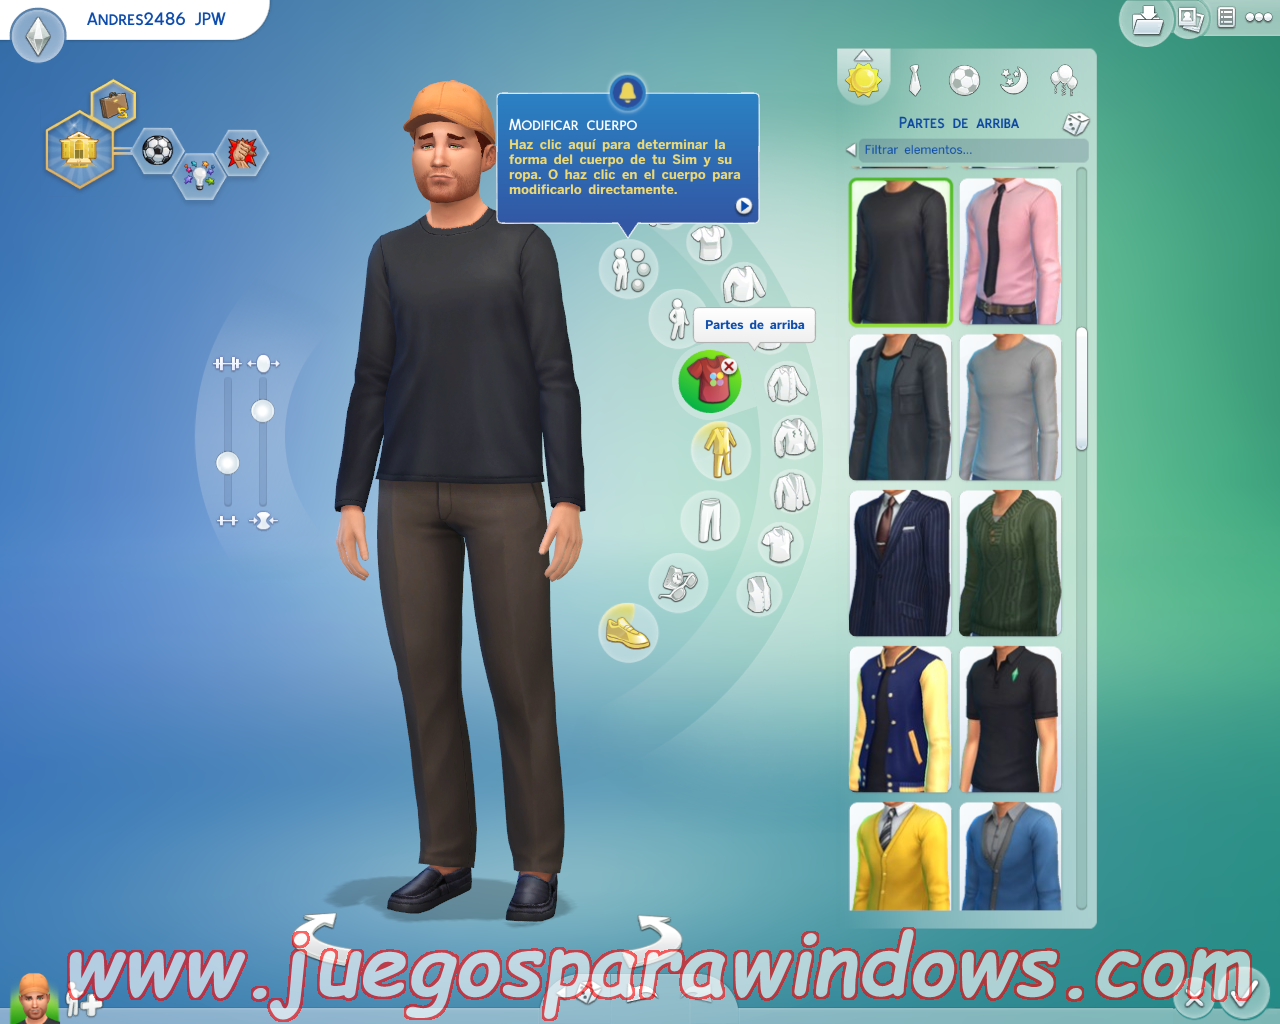 Los Sims 4 Digital Deluxe Edition ESPAÑOL PC Full + Update v1.4.83.1010 Incl DLC (RELOADED) 13